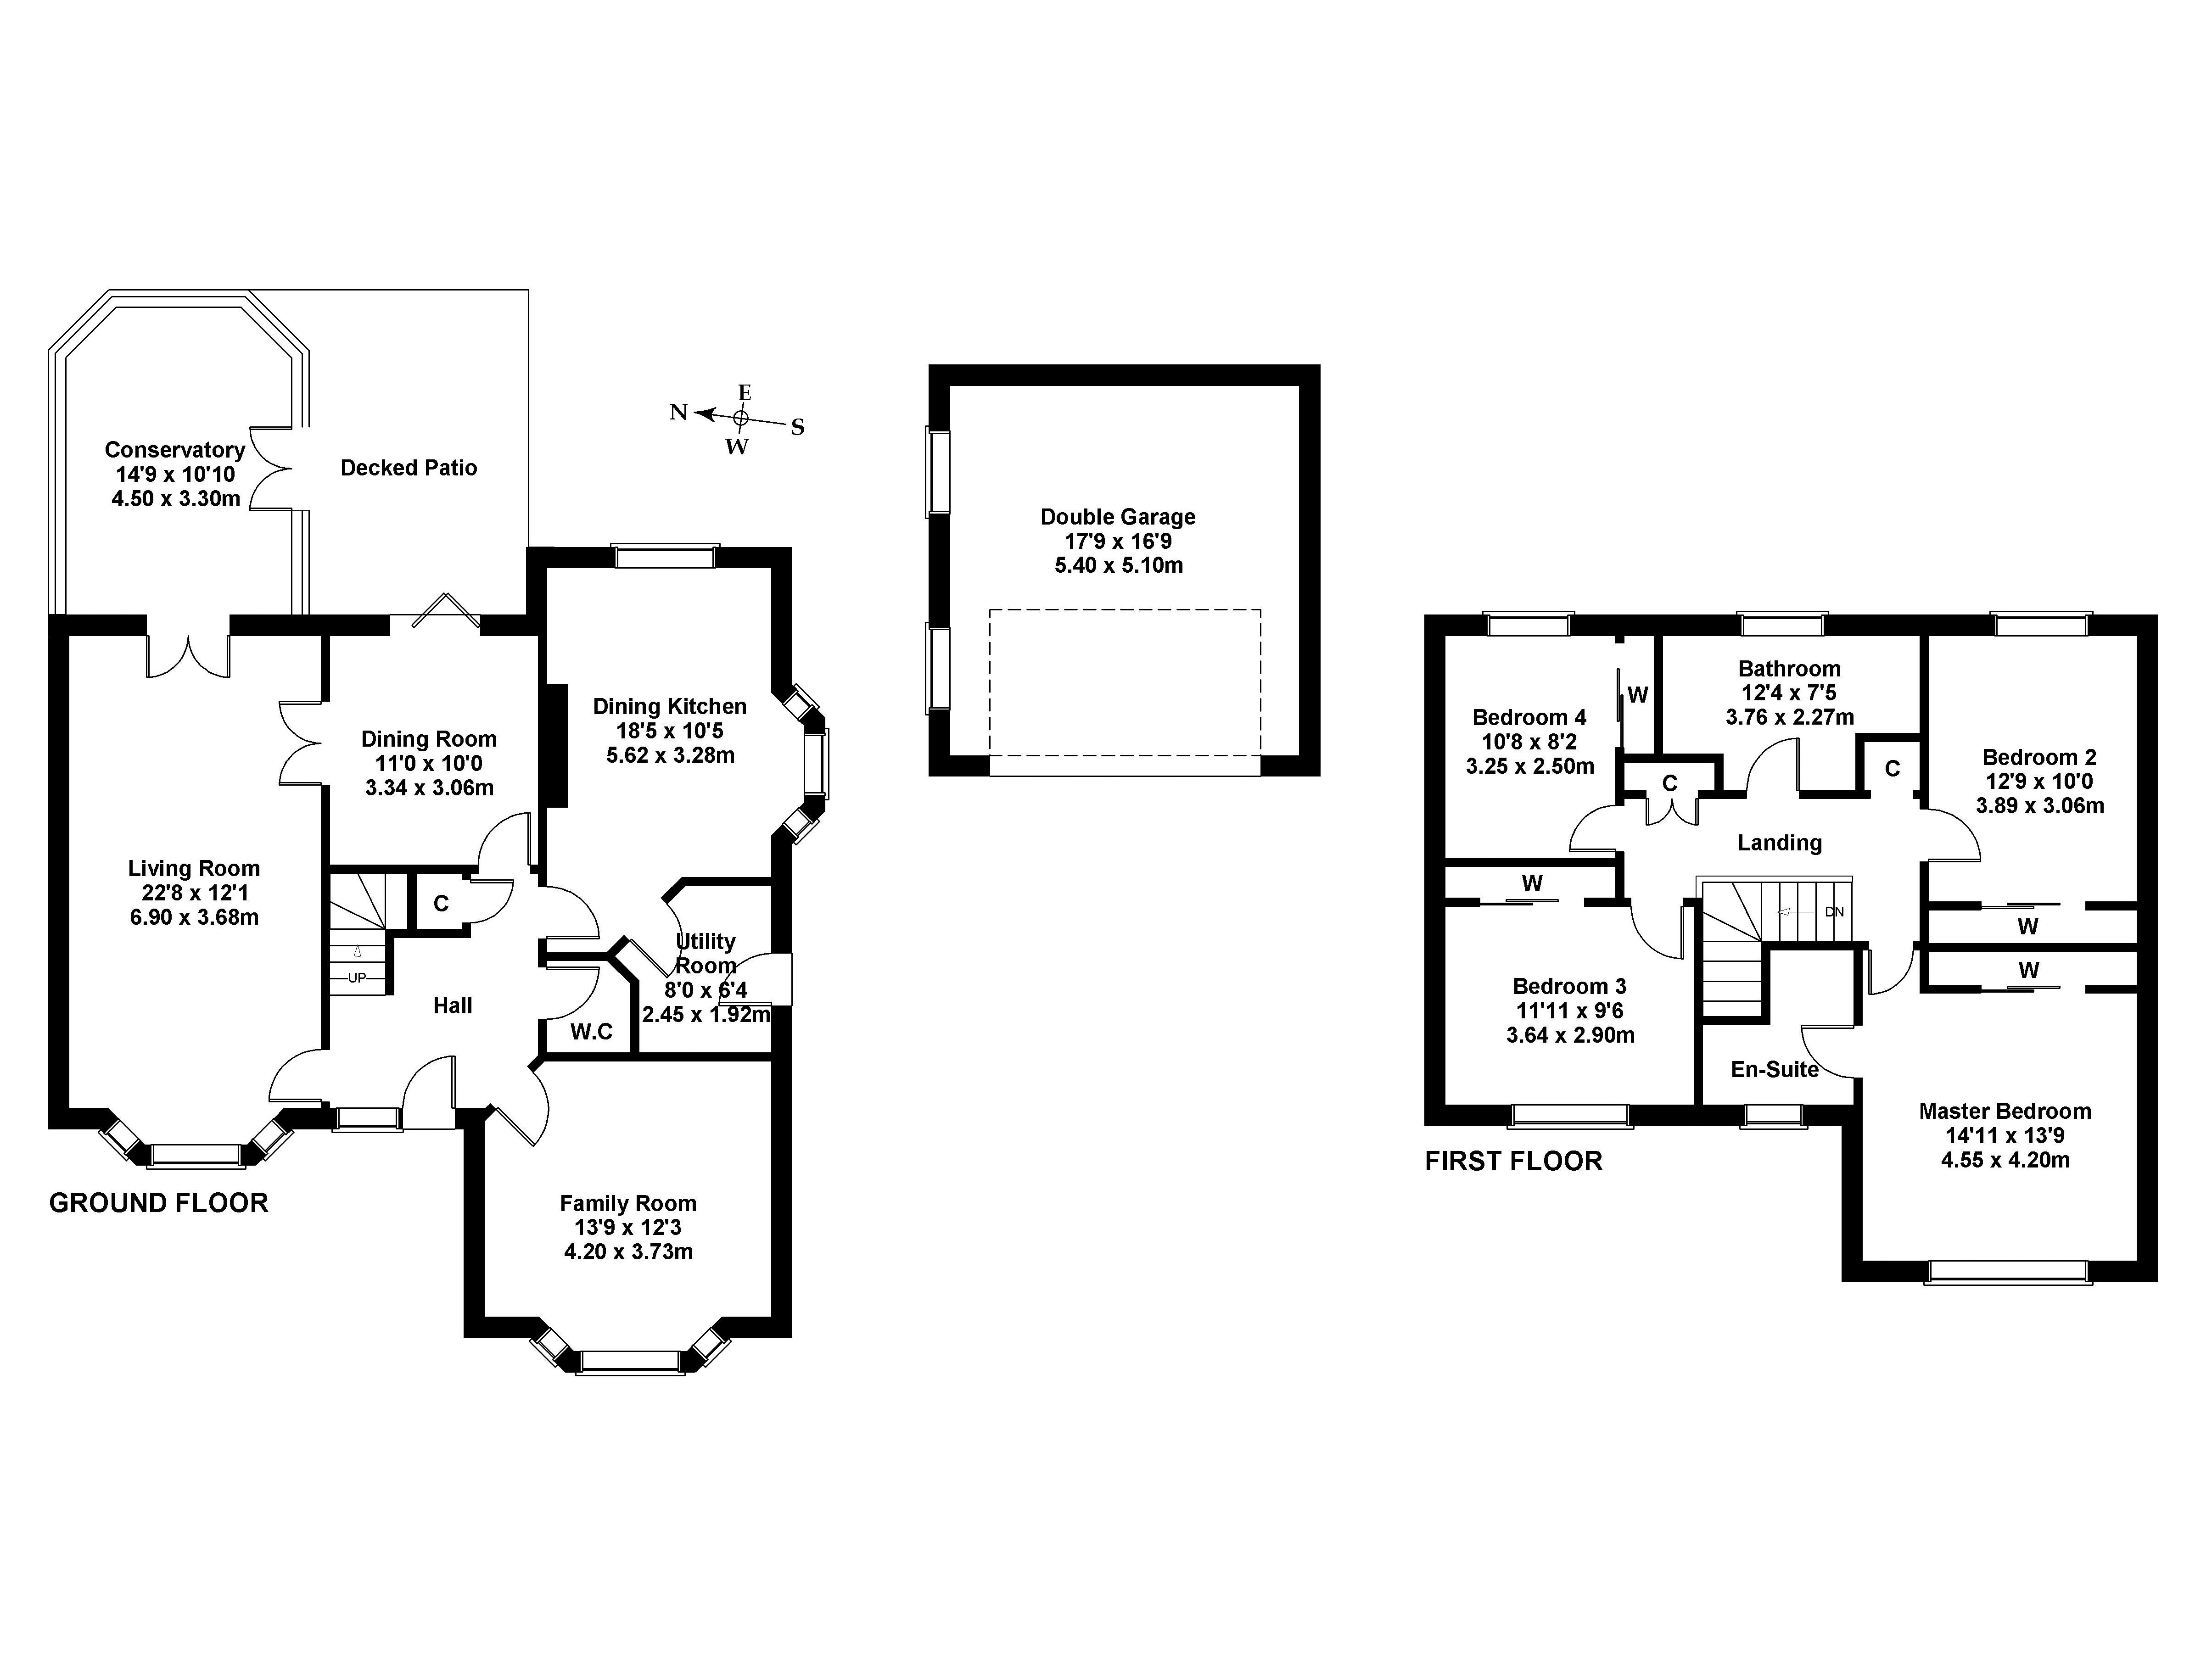 Floorplan 1 of 1 The Orchard Stoneyhill Farm Road, Musselburgh, East Lothian, EH21 6US